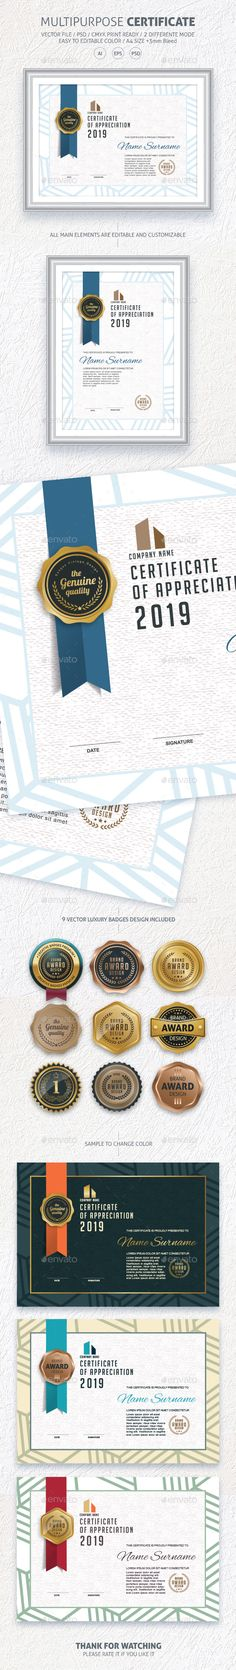 Certificate  — PSD Template #design #security • Download ➝ https://graphicriver.net/item/certificate/18319610?ref=pxcr